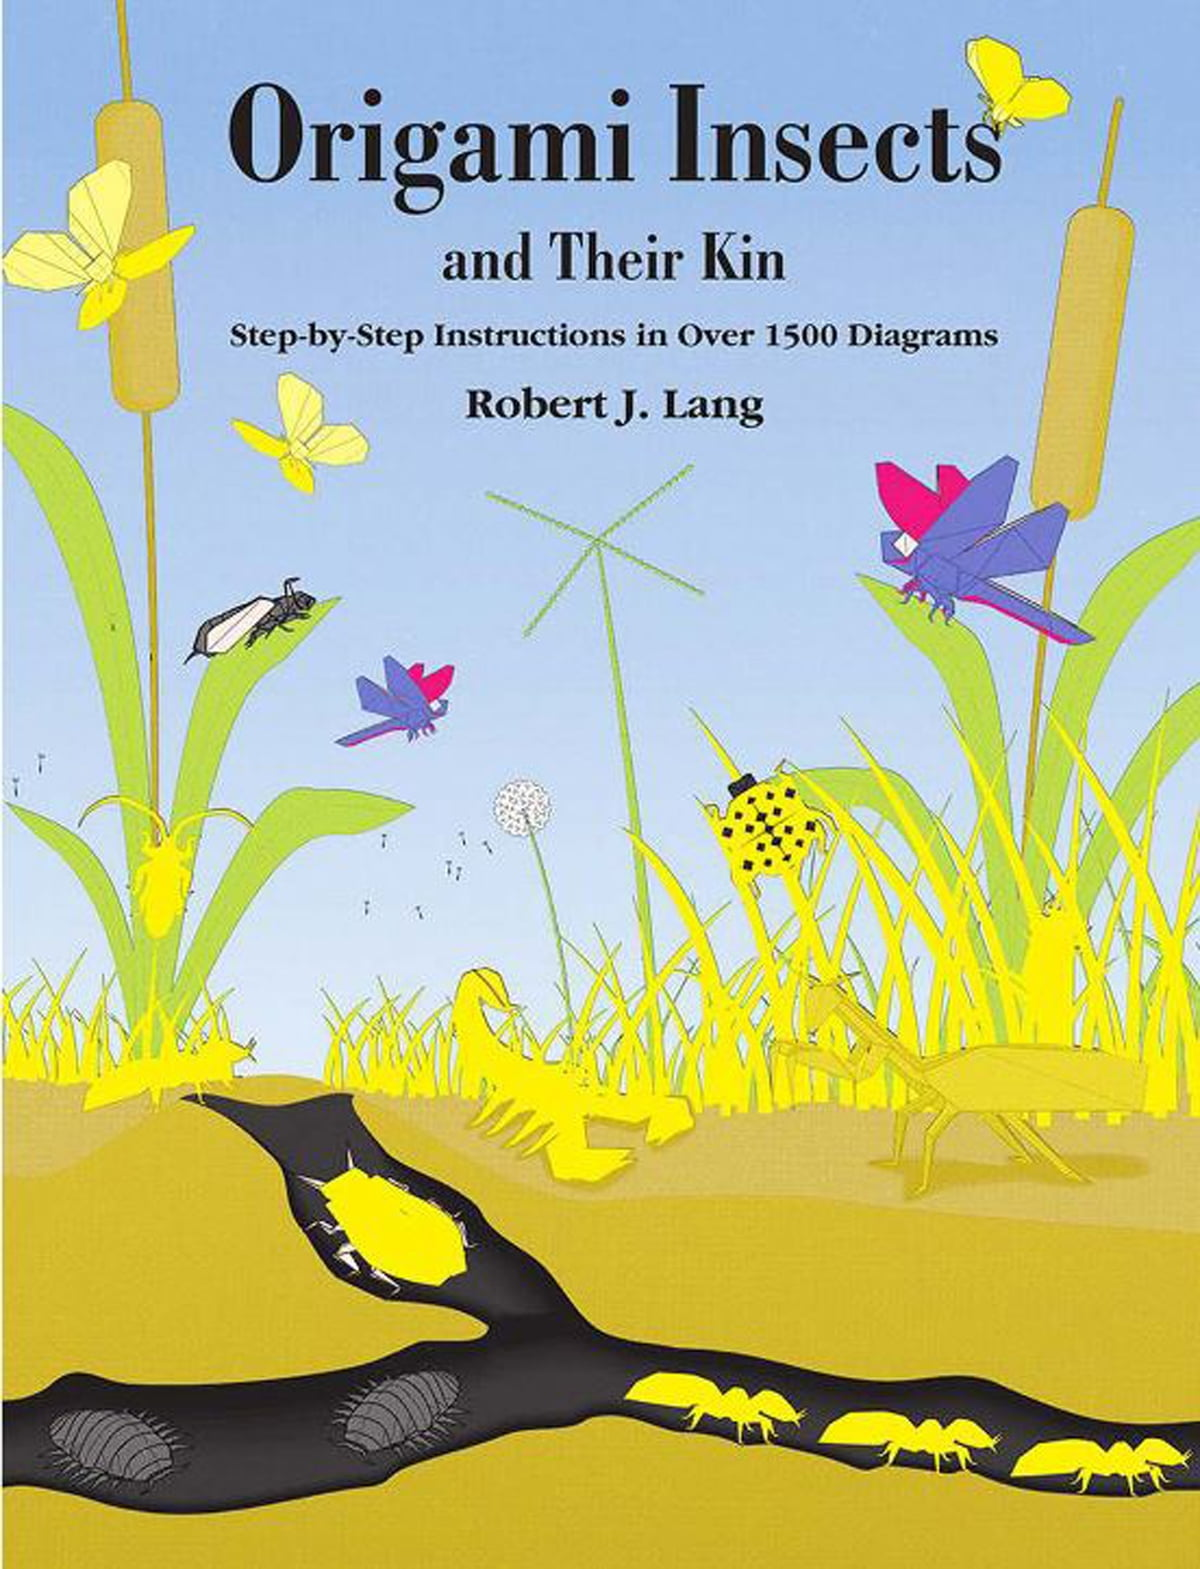 Origami Insects eBook by Robert J. Lang - 9780486132877 ... - photo#8